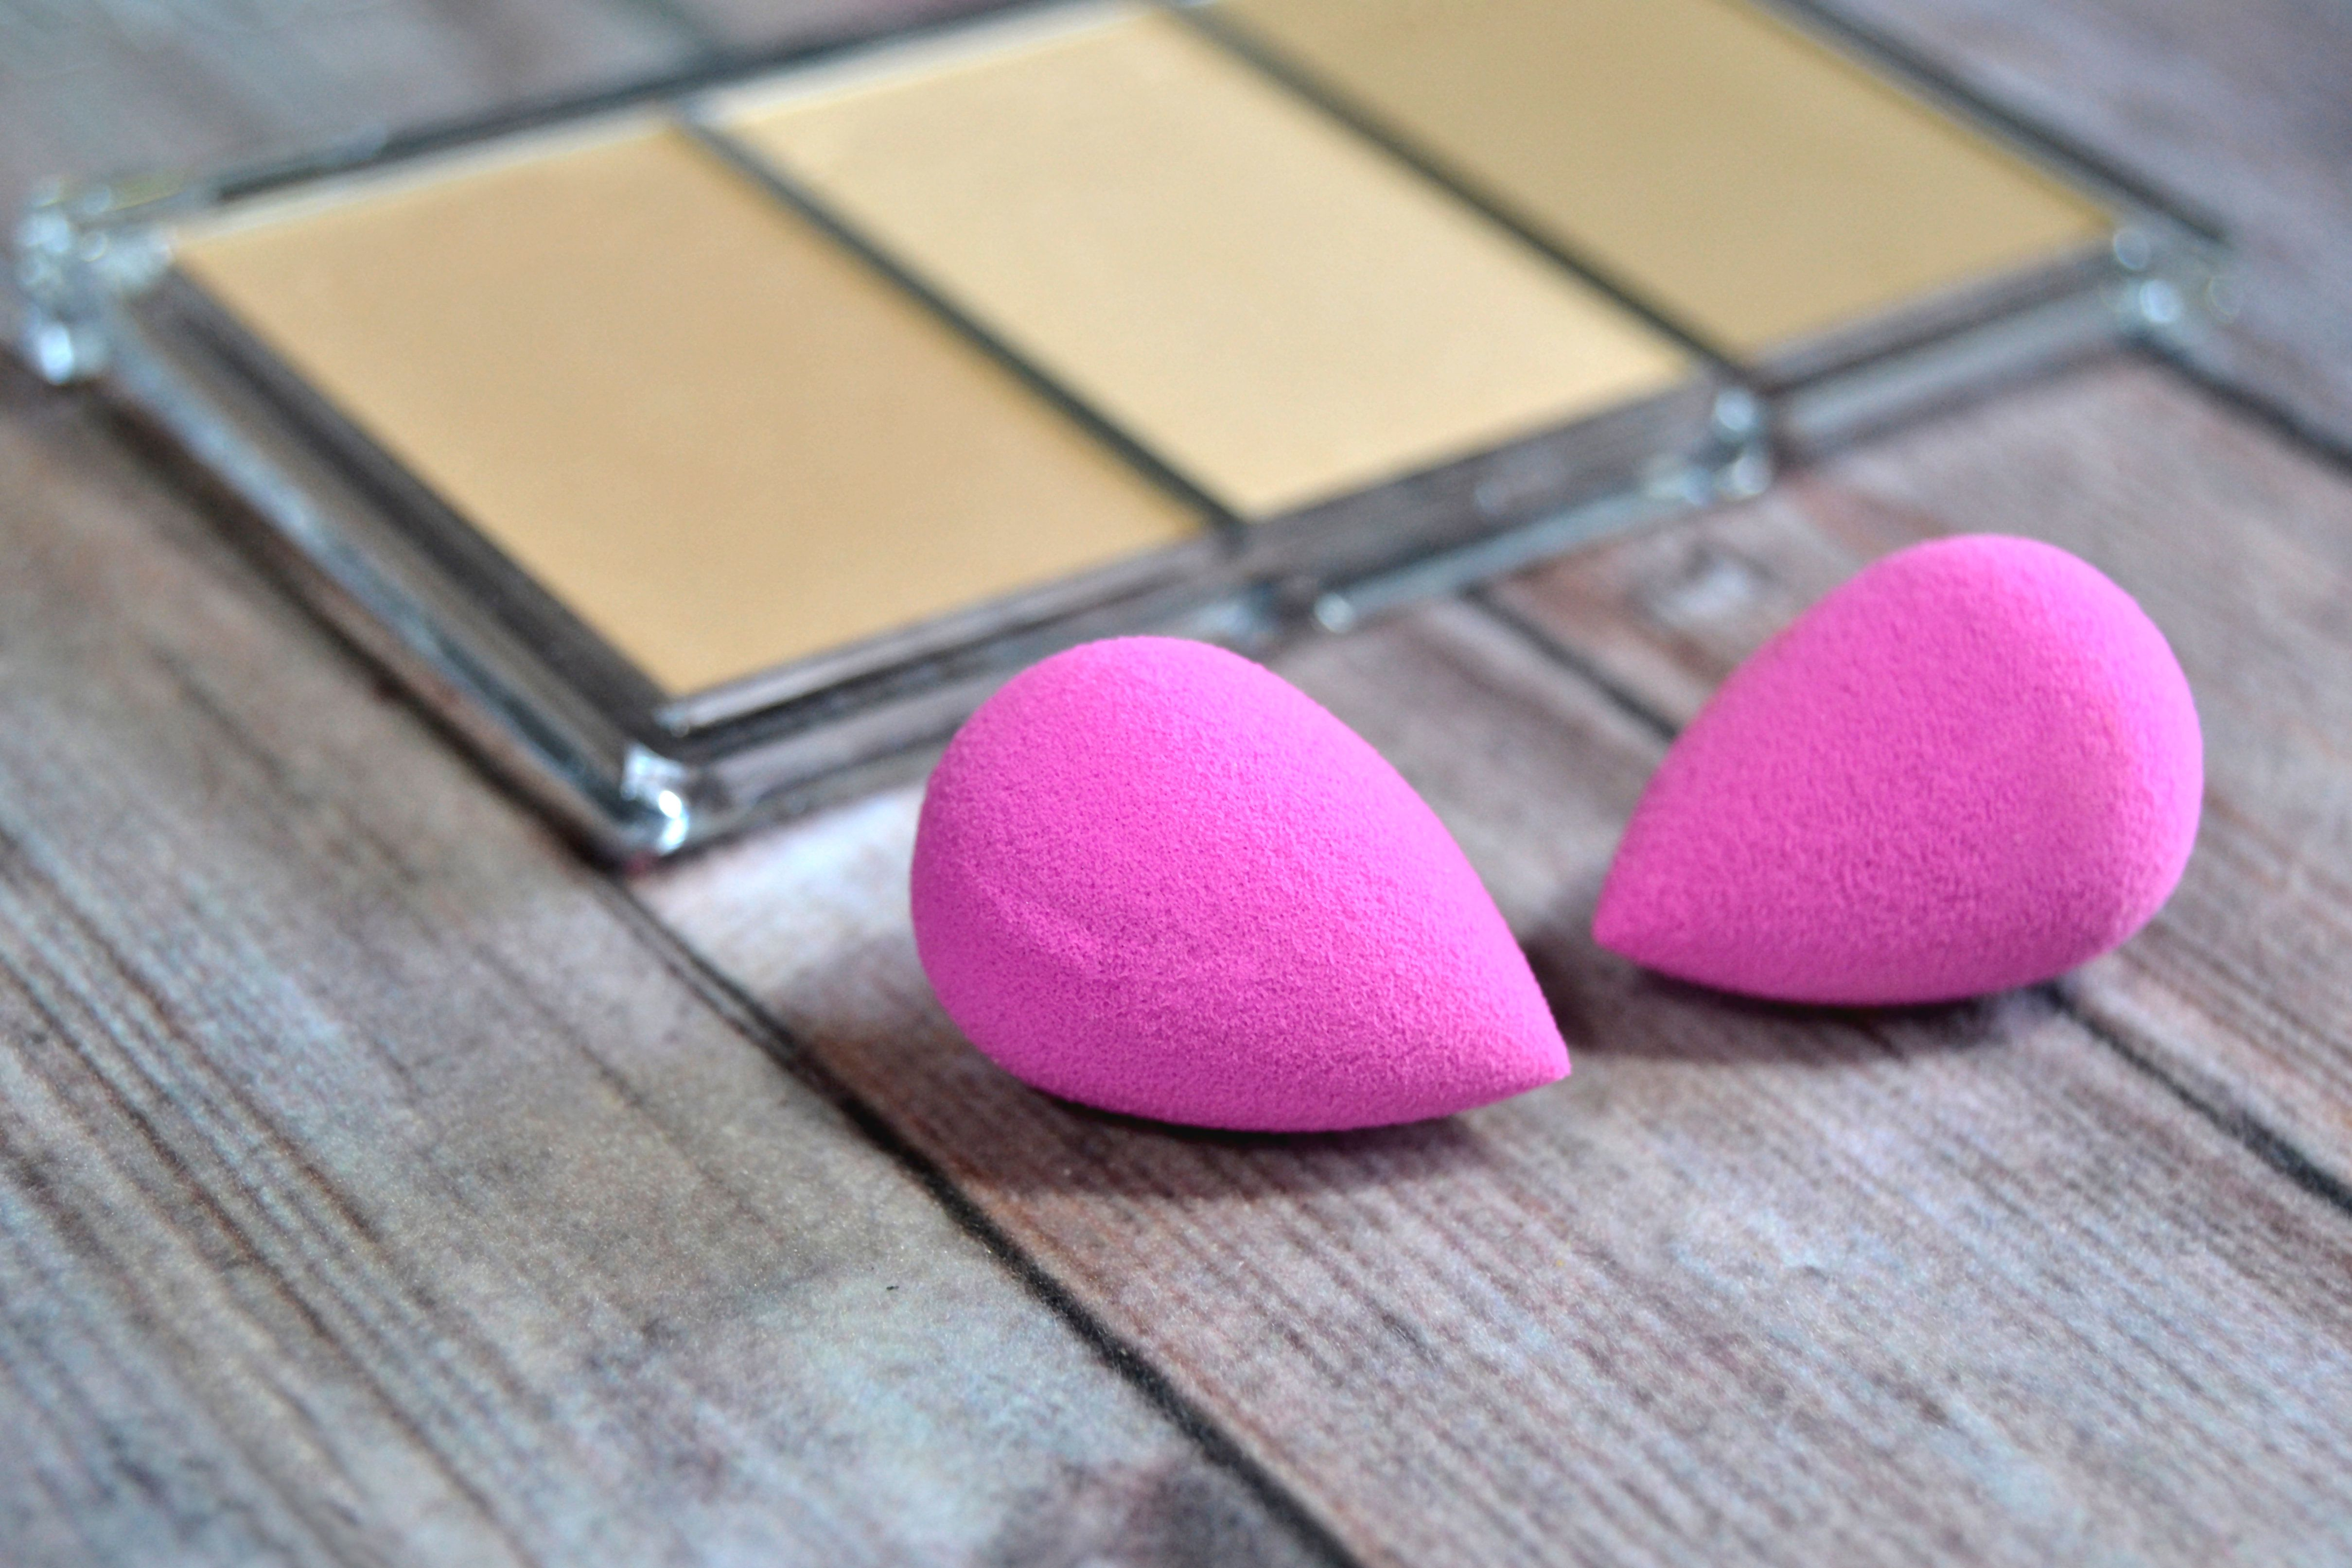 Makeup and makeup sponges on wooden background